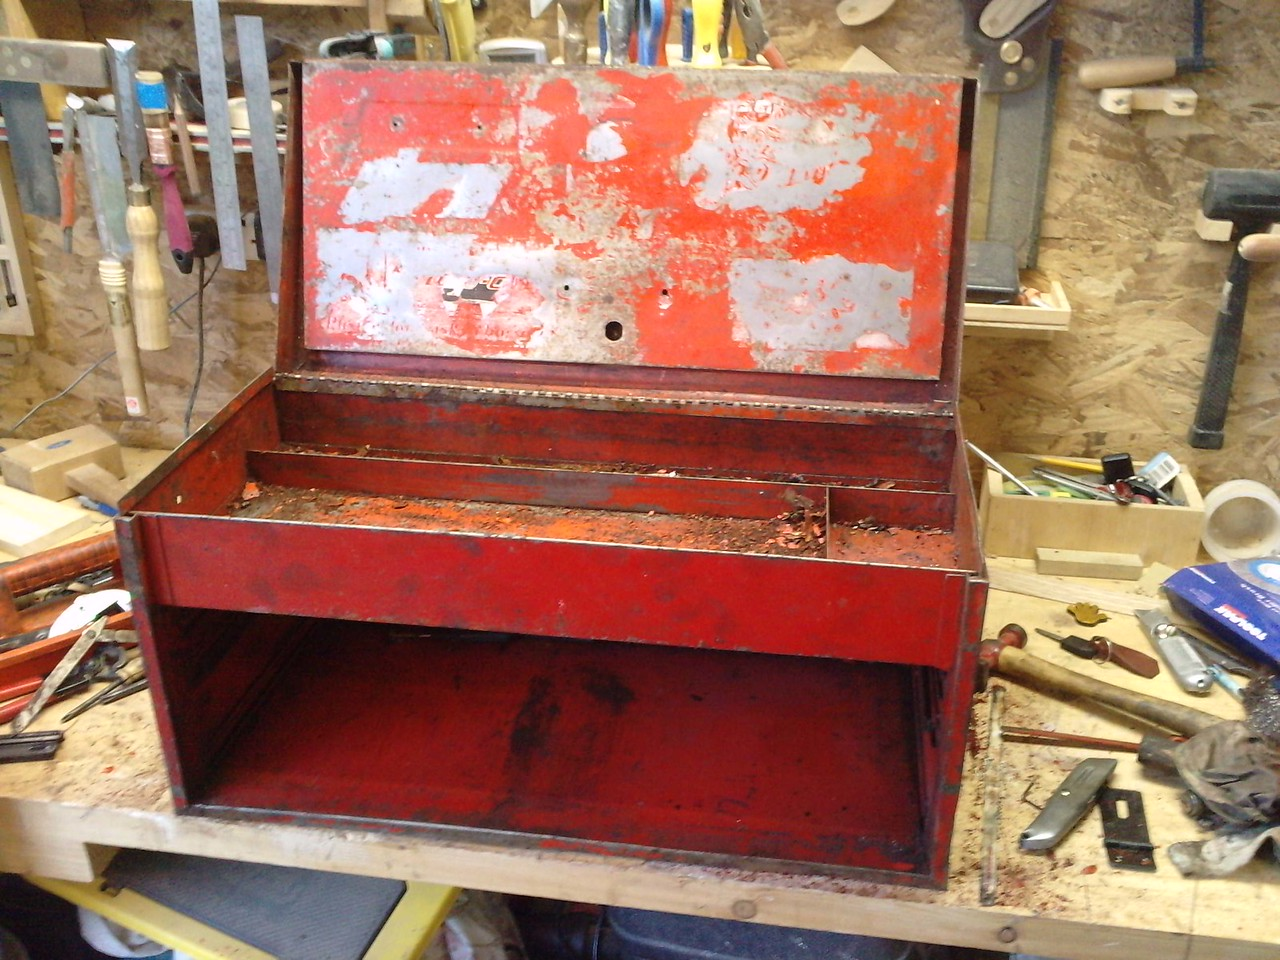 Snapon Toolbox with drawers removed. Locks have also been removed